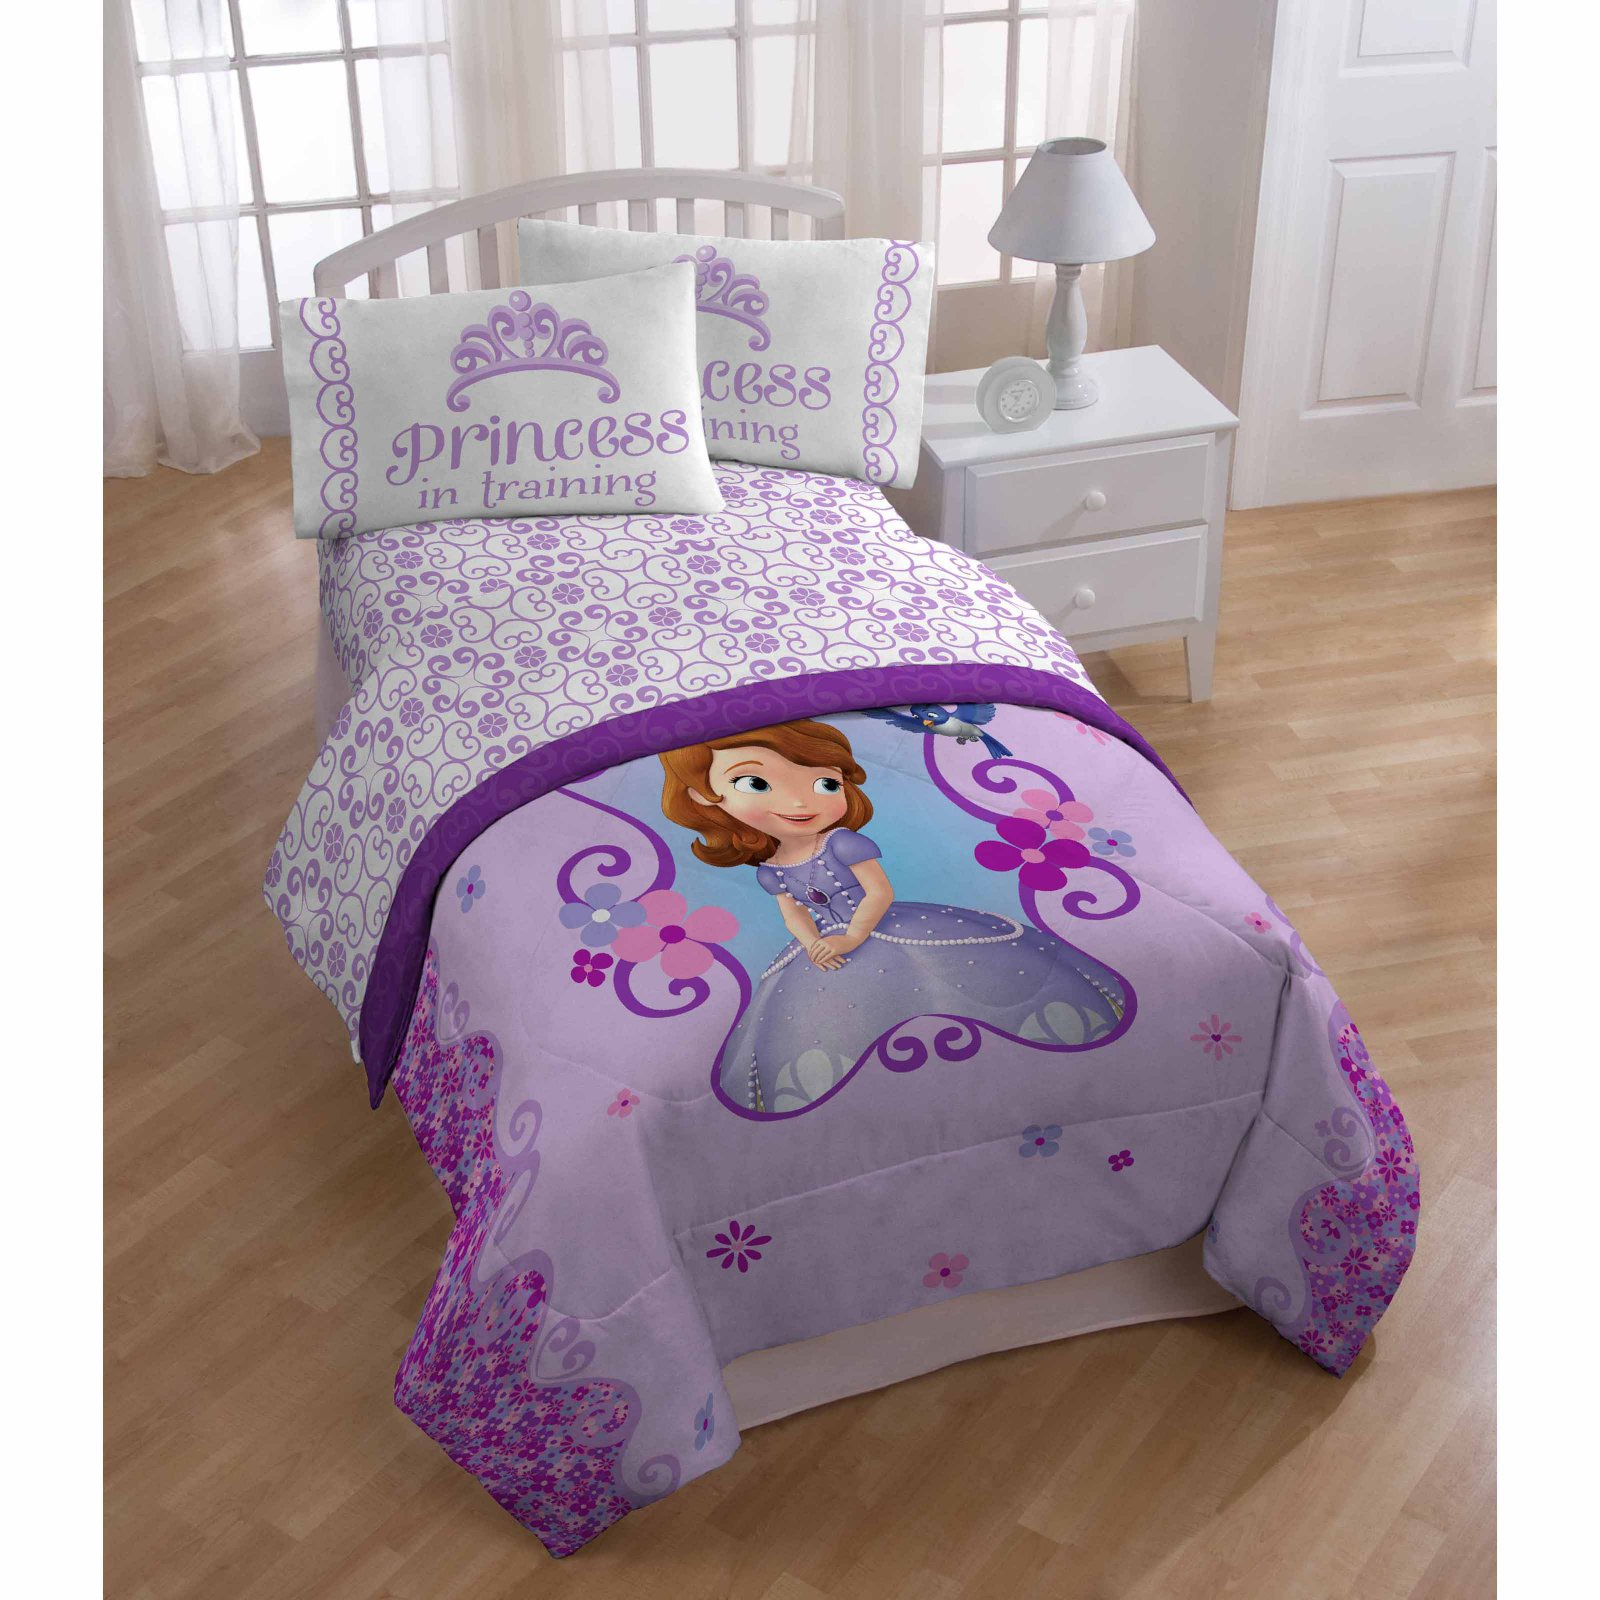 Sofia the First Scroll 3 Piece Sheet Set by Disney